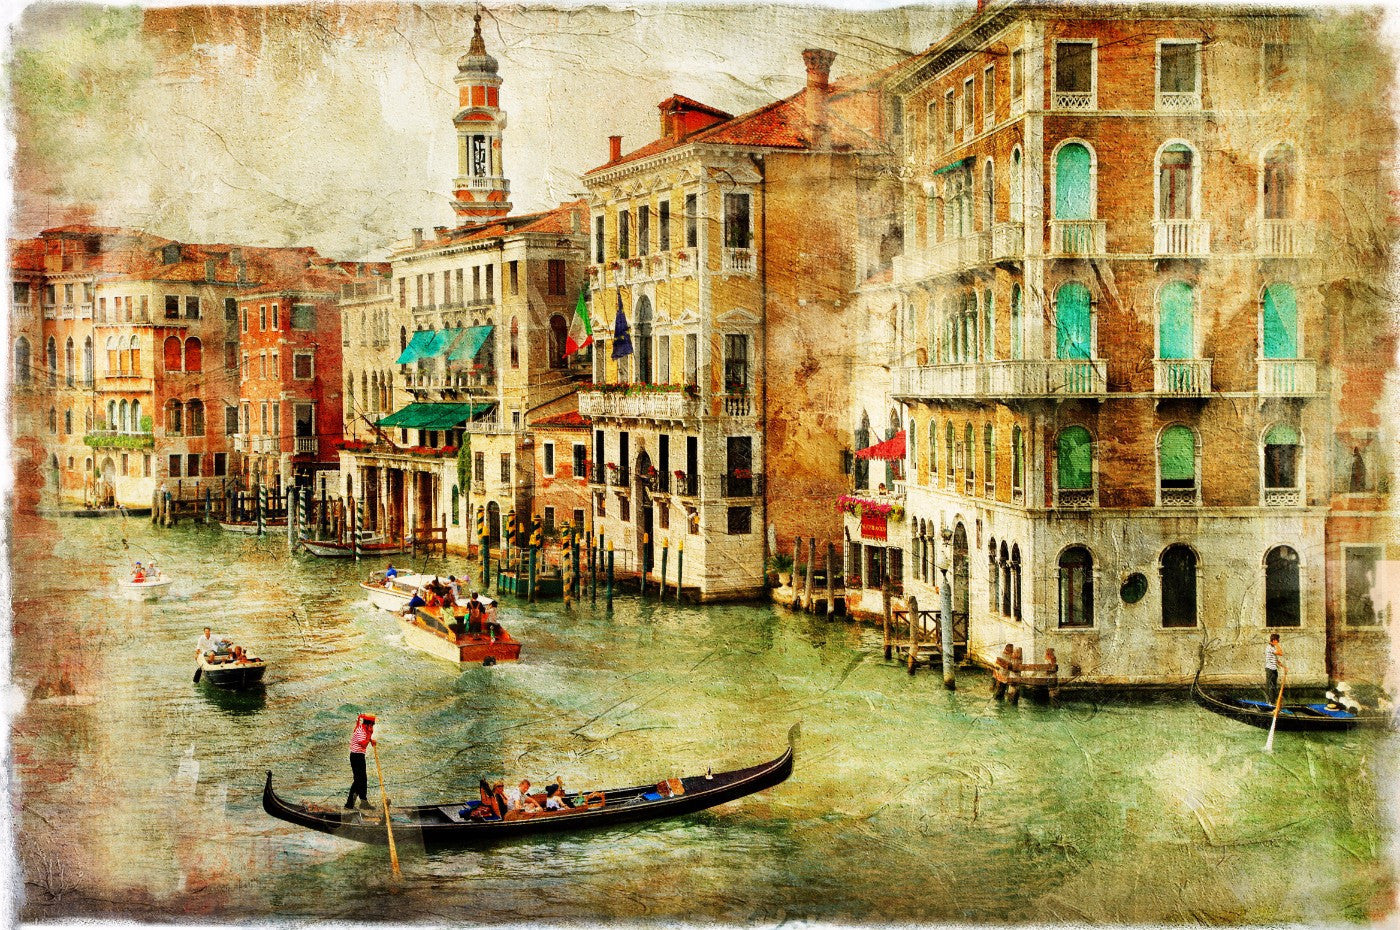 Grand Canal Canvas Prints By Tommy Buy Posters Frames Canvas Digital Art Prints Small Compact Medium And Large Variants